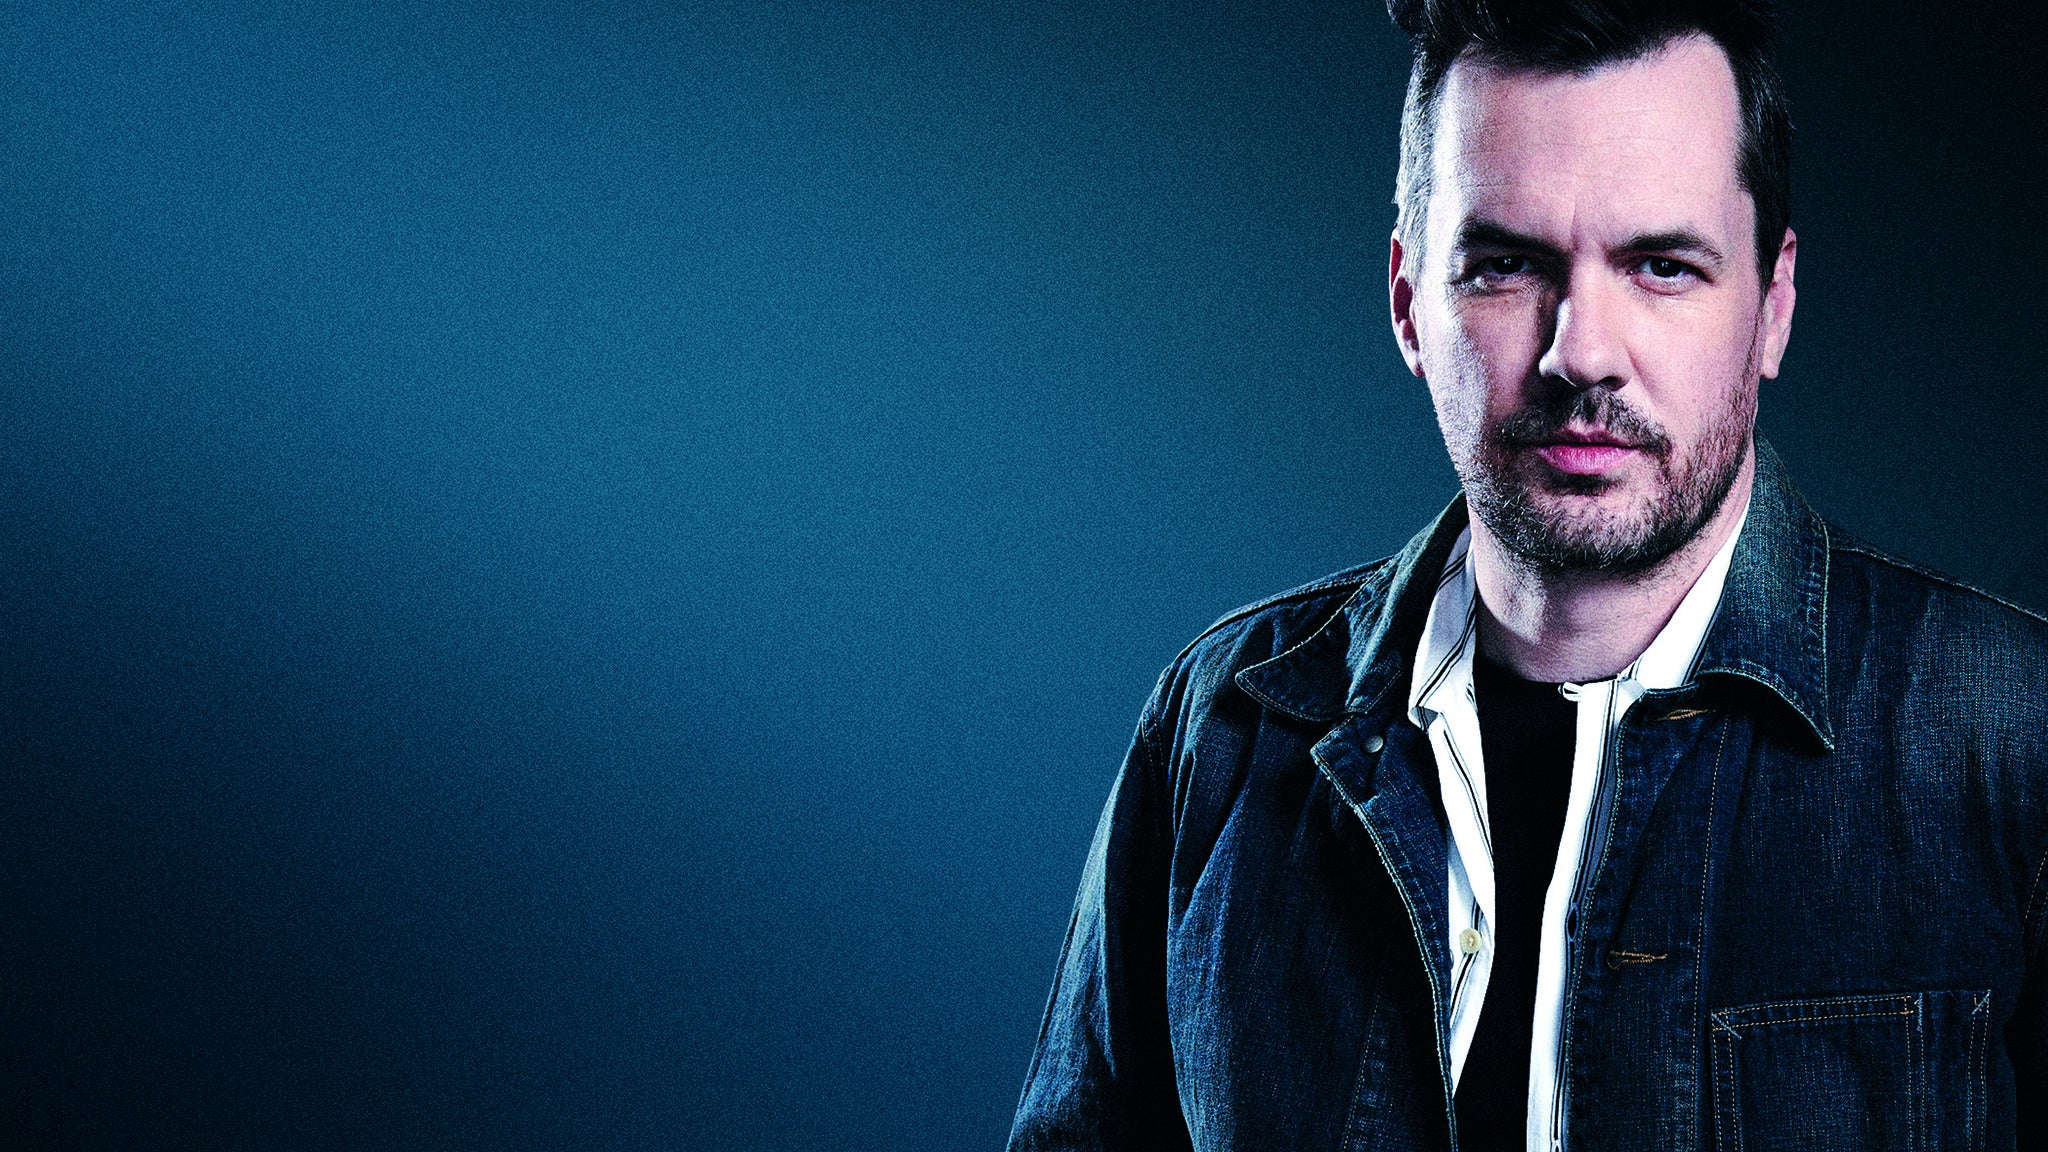 AEG presents Jim Jefferies: Oblivious